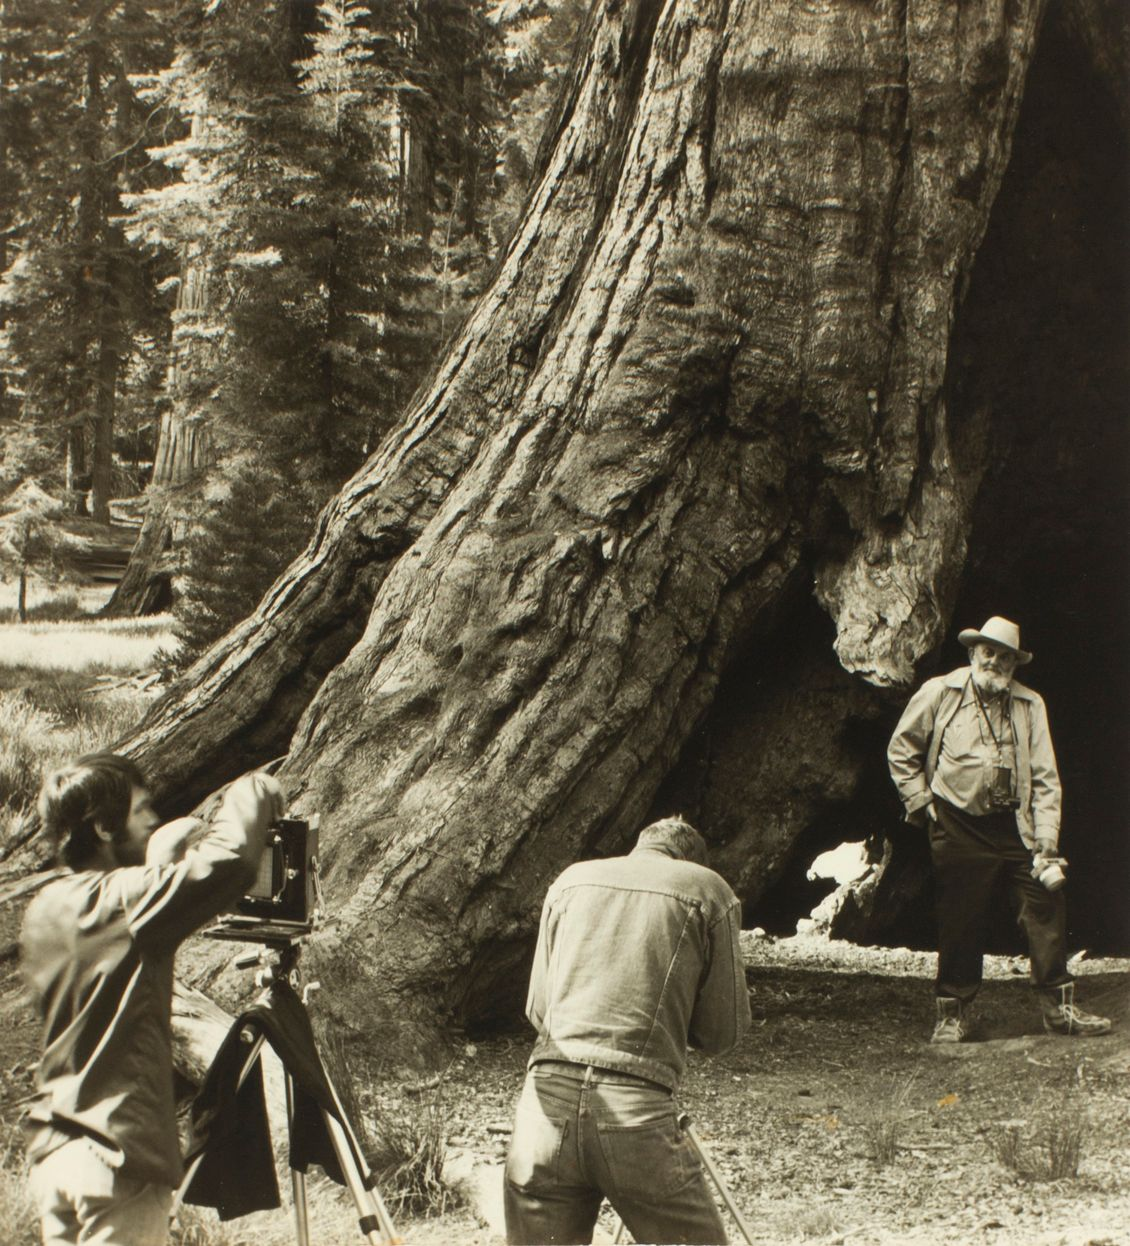 Ansel Adams, Marian Wood Kolisch. A photograph of Ansel Adams posing as two individuals take photographs of him in front of an enormous tree trunk. This portrait-oriented photo shows the figure of Ansel Adams standing at lower right and two photographers positioned at lower left and lower center. The photo is dominated by the huge trunk of a tree that dwarfs the figures. It sweeps from lower left across the photo and upwards to the upper right, displaying craggy, highly textured bark. At left in the background, evergreen trees in a forest setting are seen. Adams, an older white man with glasses and a white beard, stands at the base of the tree wearing a cowboy hat, light colored jacket and shirt with dark trousers and boots. He stands with his right hand in pocket and his other hand resting on his left knee. He has a camera on a strap around his neck and holds another in his left hand. At right, we see two photographers; the one at far left has short dark hair and a beard wearing a long sleeved top and pants. The figure is adjusting a camera on a tripod. At lower center, another photographer is seen from the back wearing a jean jacket and jeans, seemingly bent over a camera and tripod.